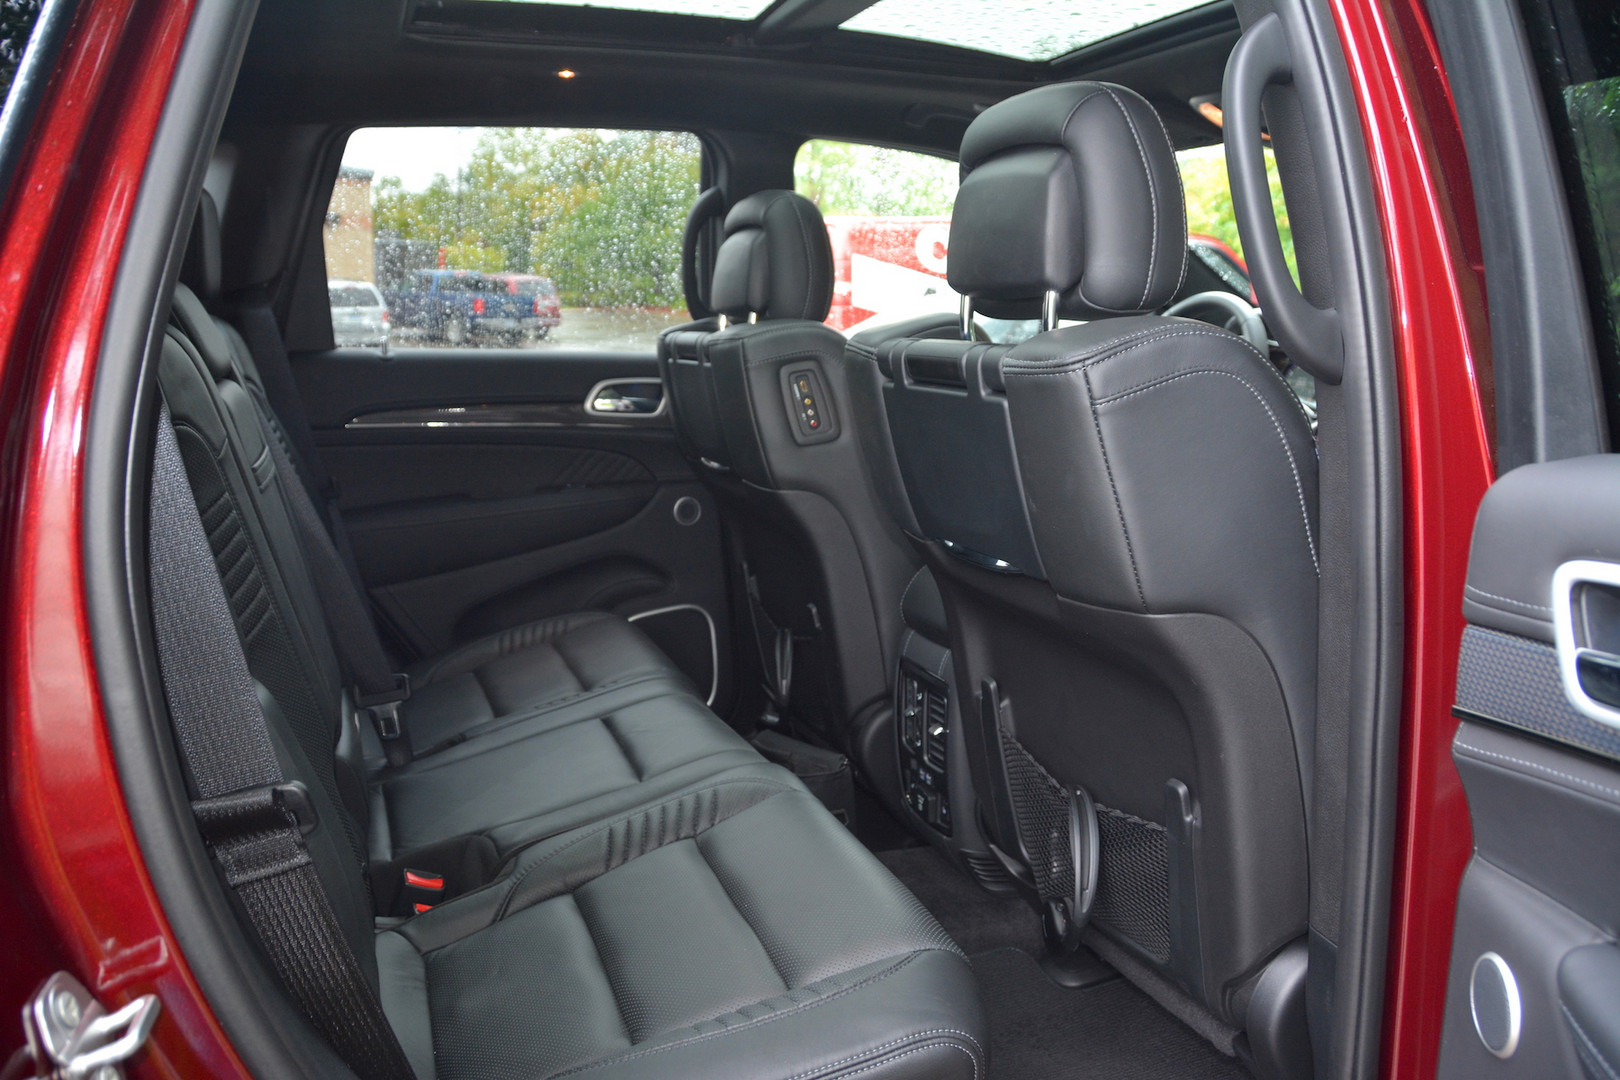 2019 Jeep Grand Cherokee Trackhawk Interior